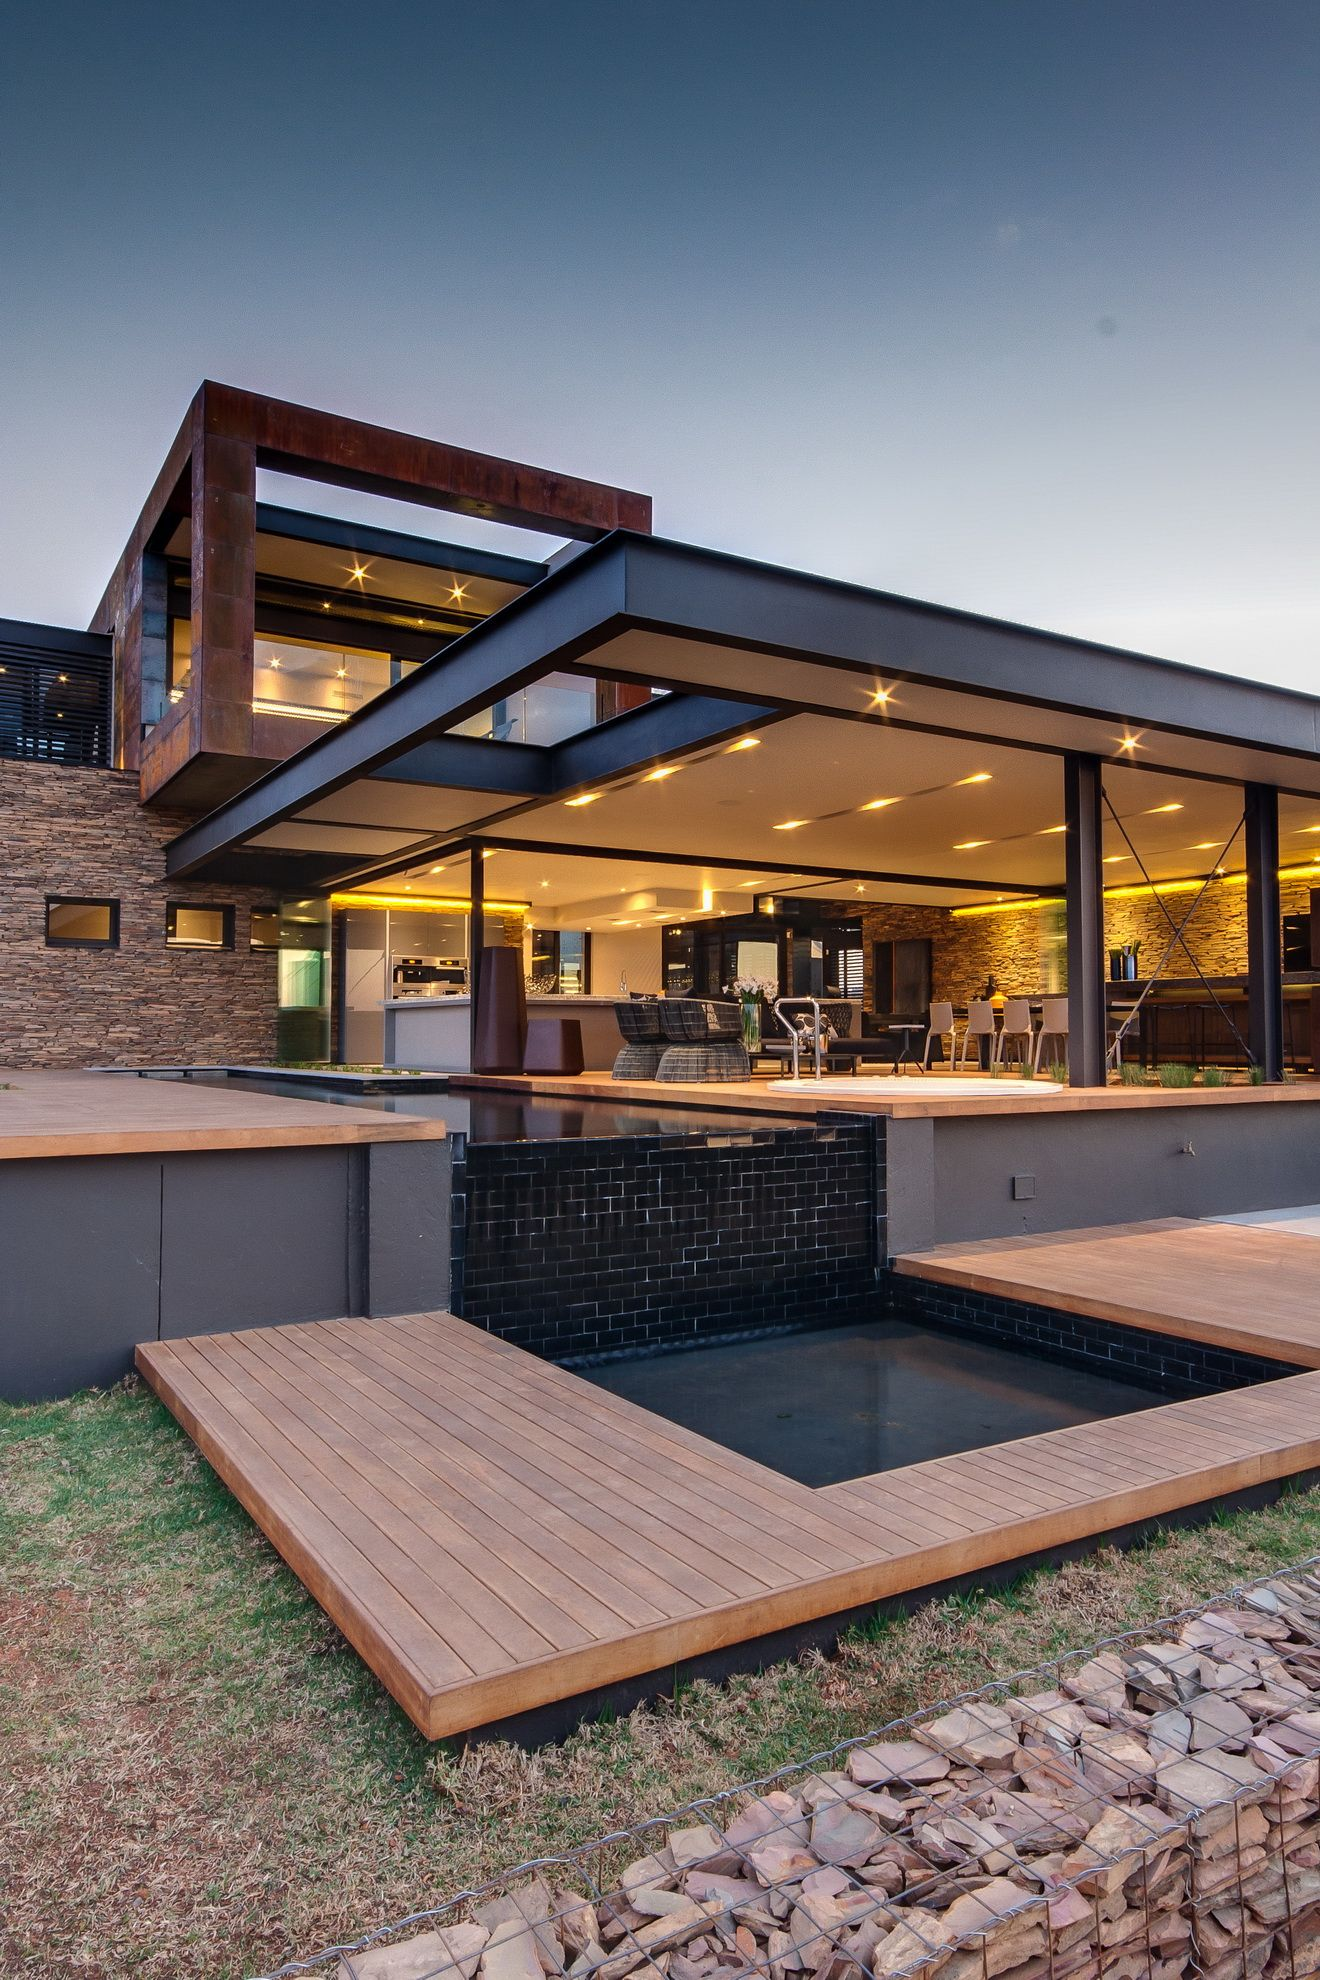 House Boz Form Nico Van Der Meulen Architects Design